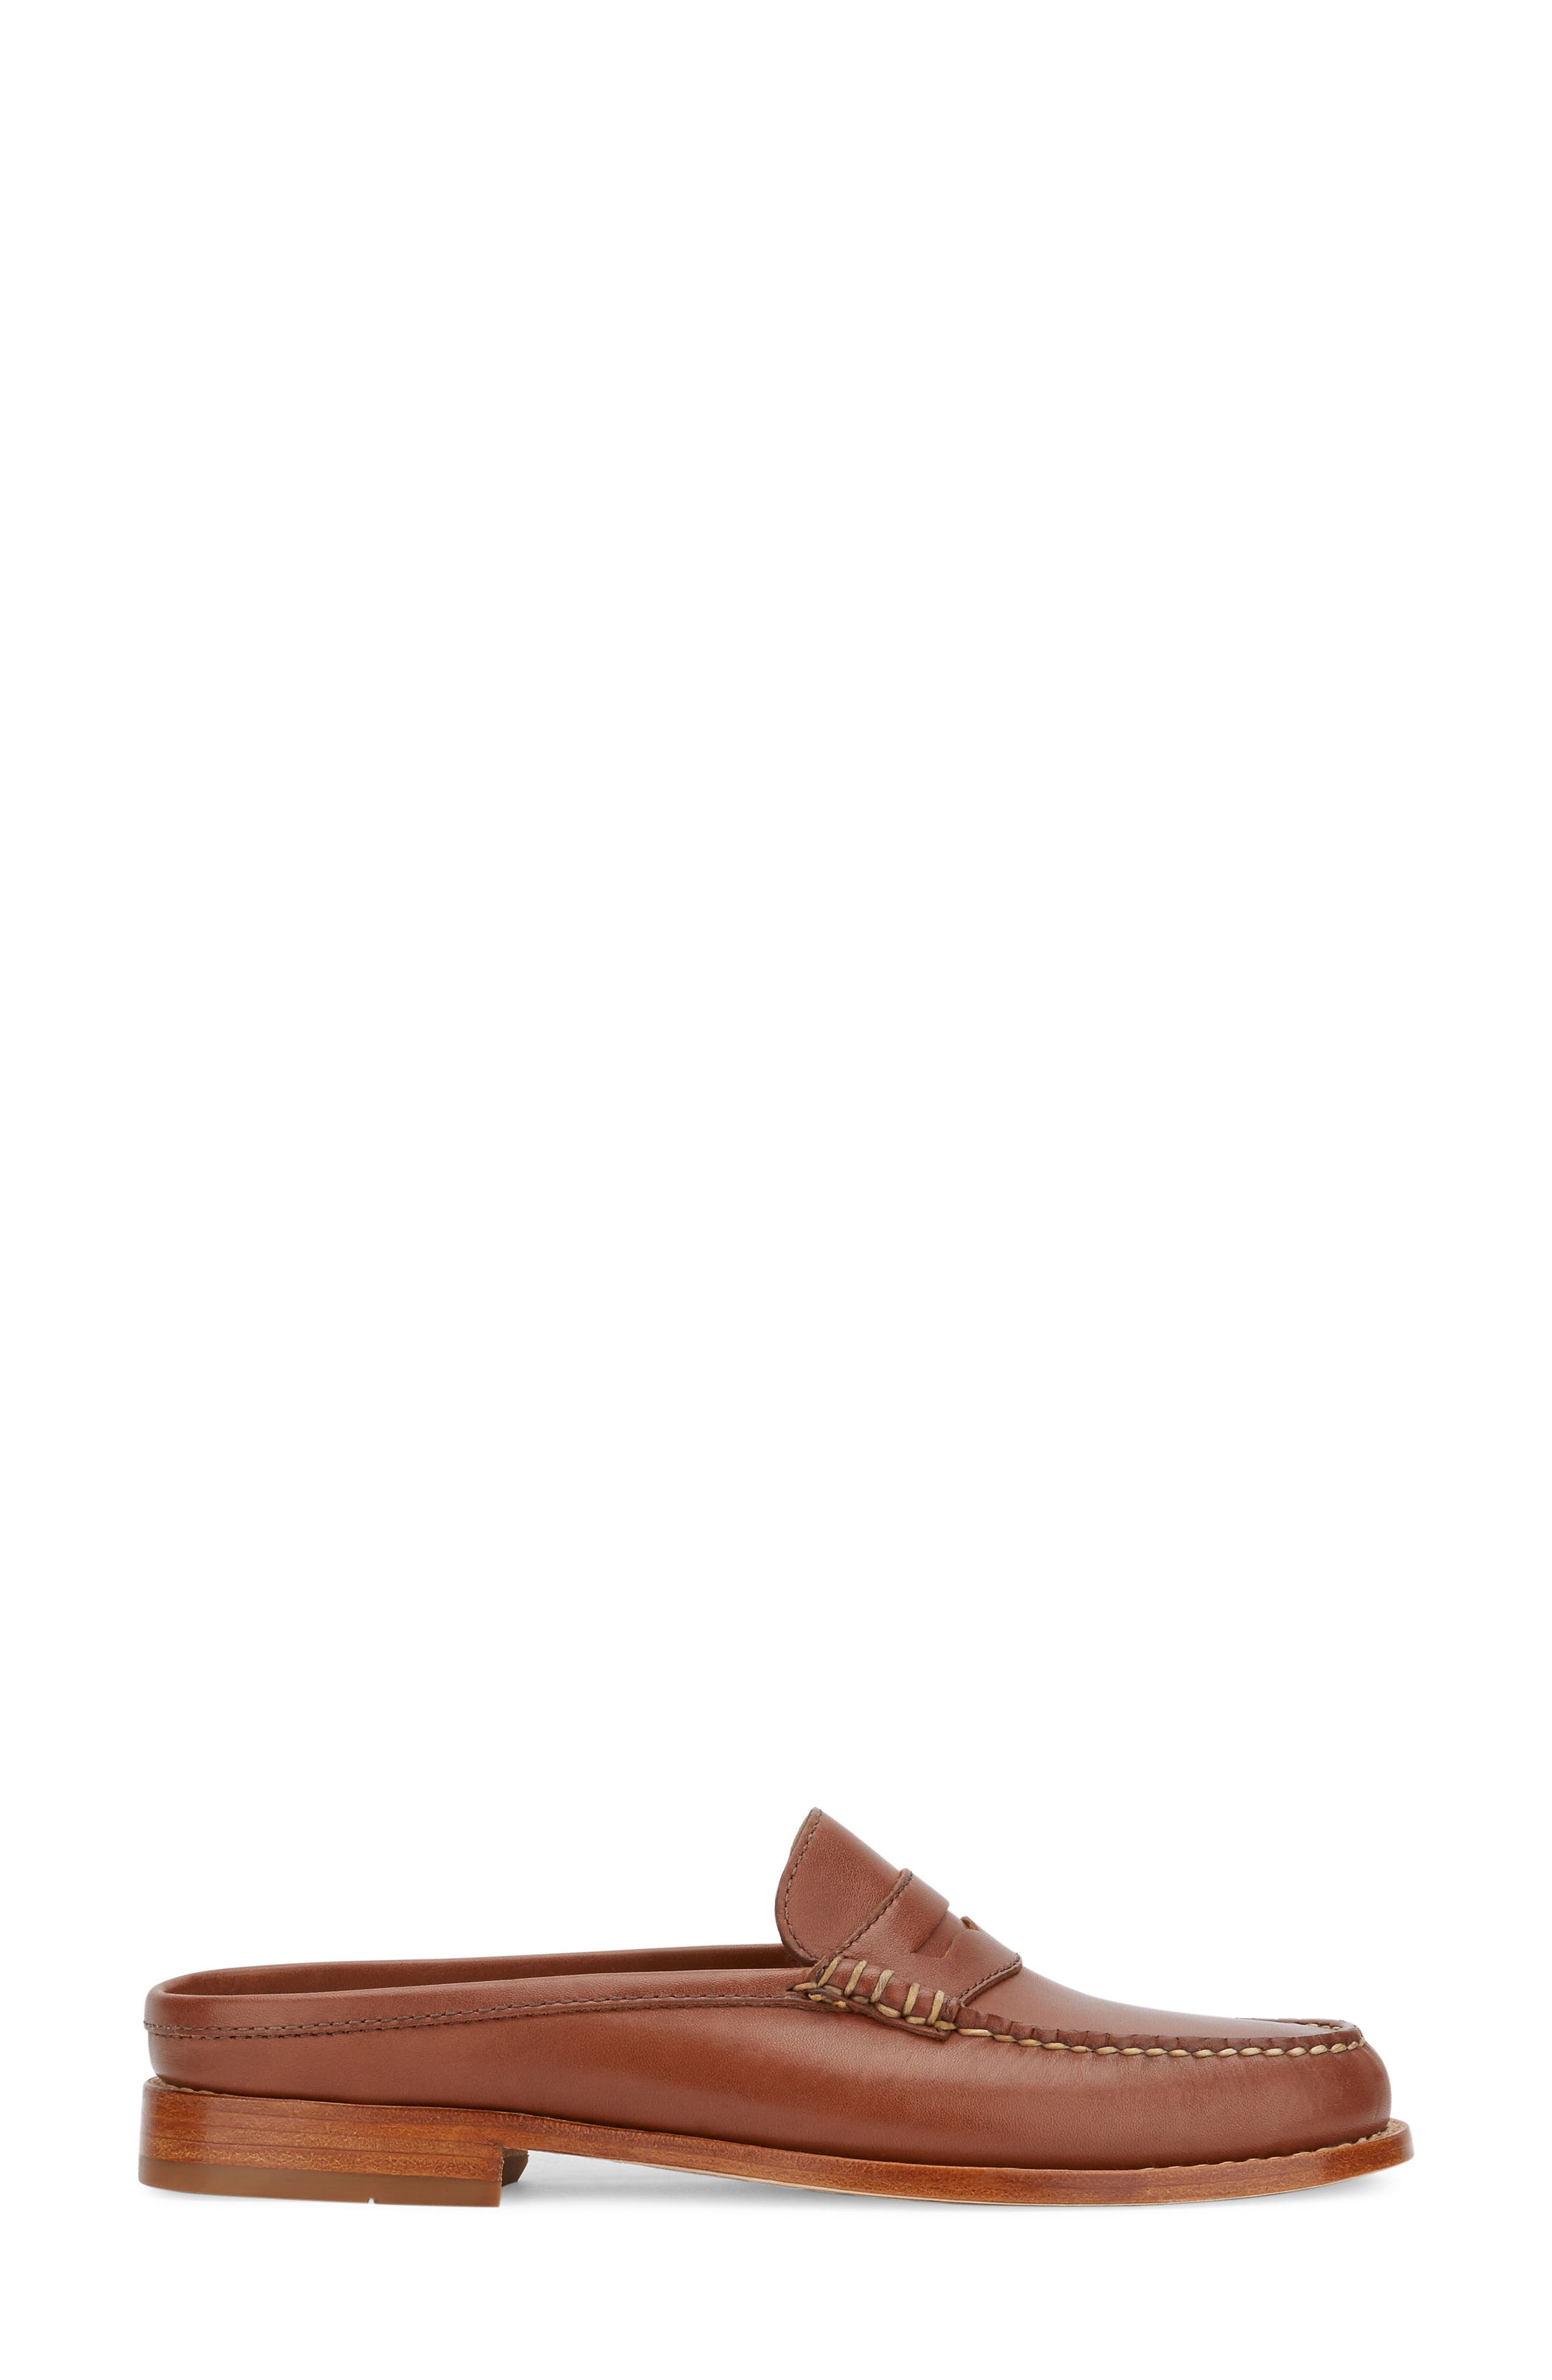 Wynn Loafer Mule,                             Alternate thumbnail 58, color,